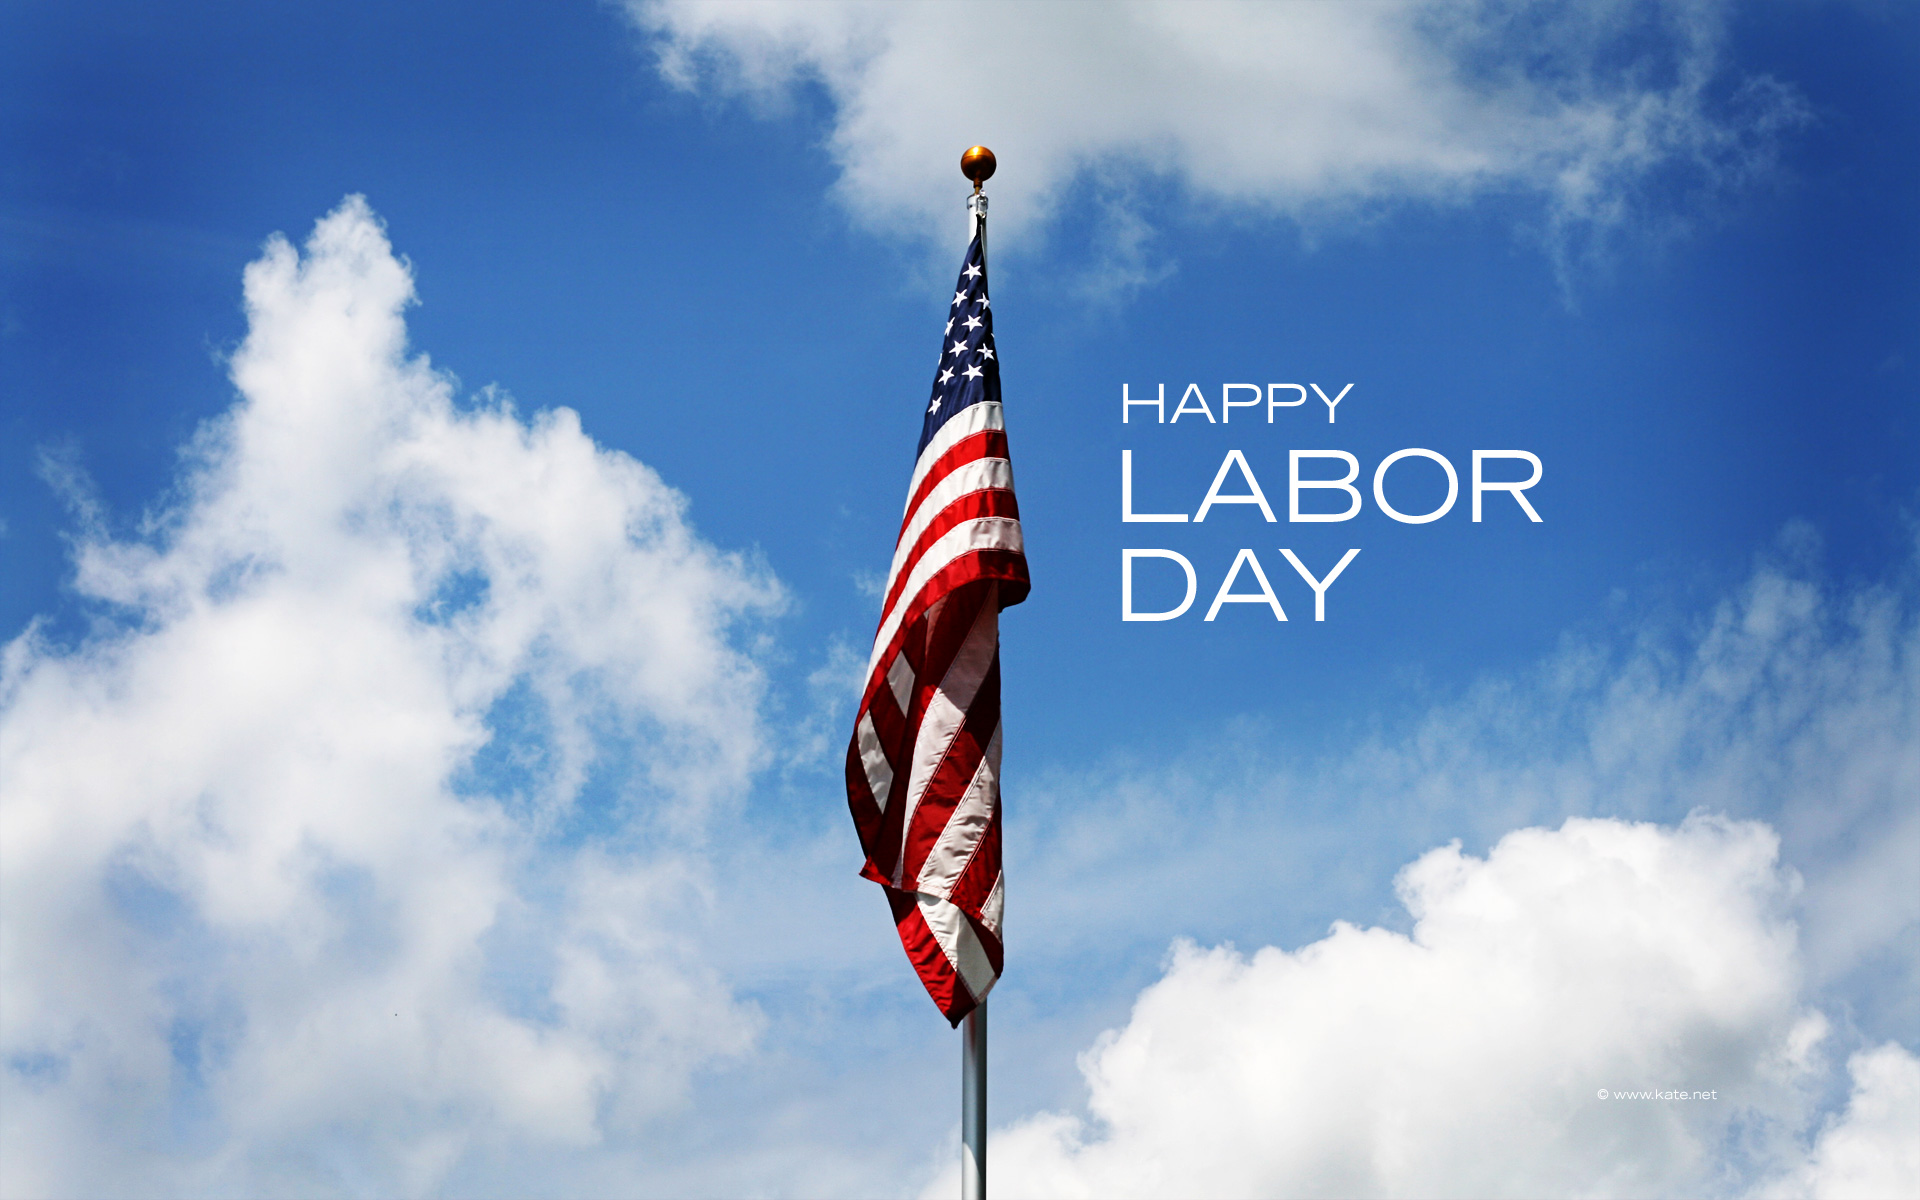 Labor Day Wallpapers, Labor Day Resources from Kate.net